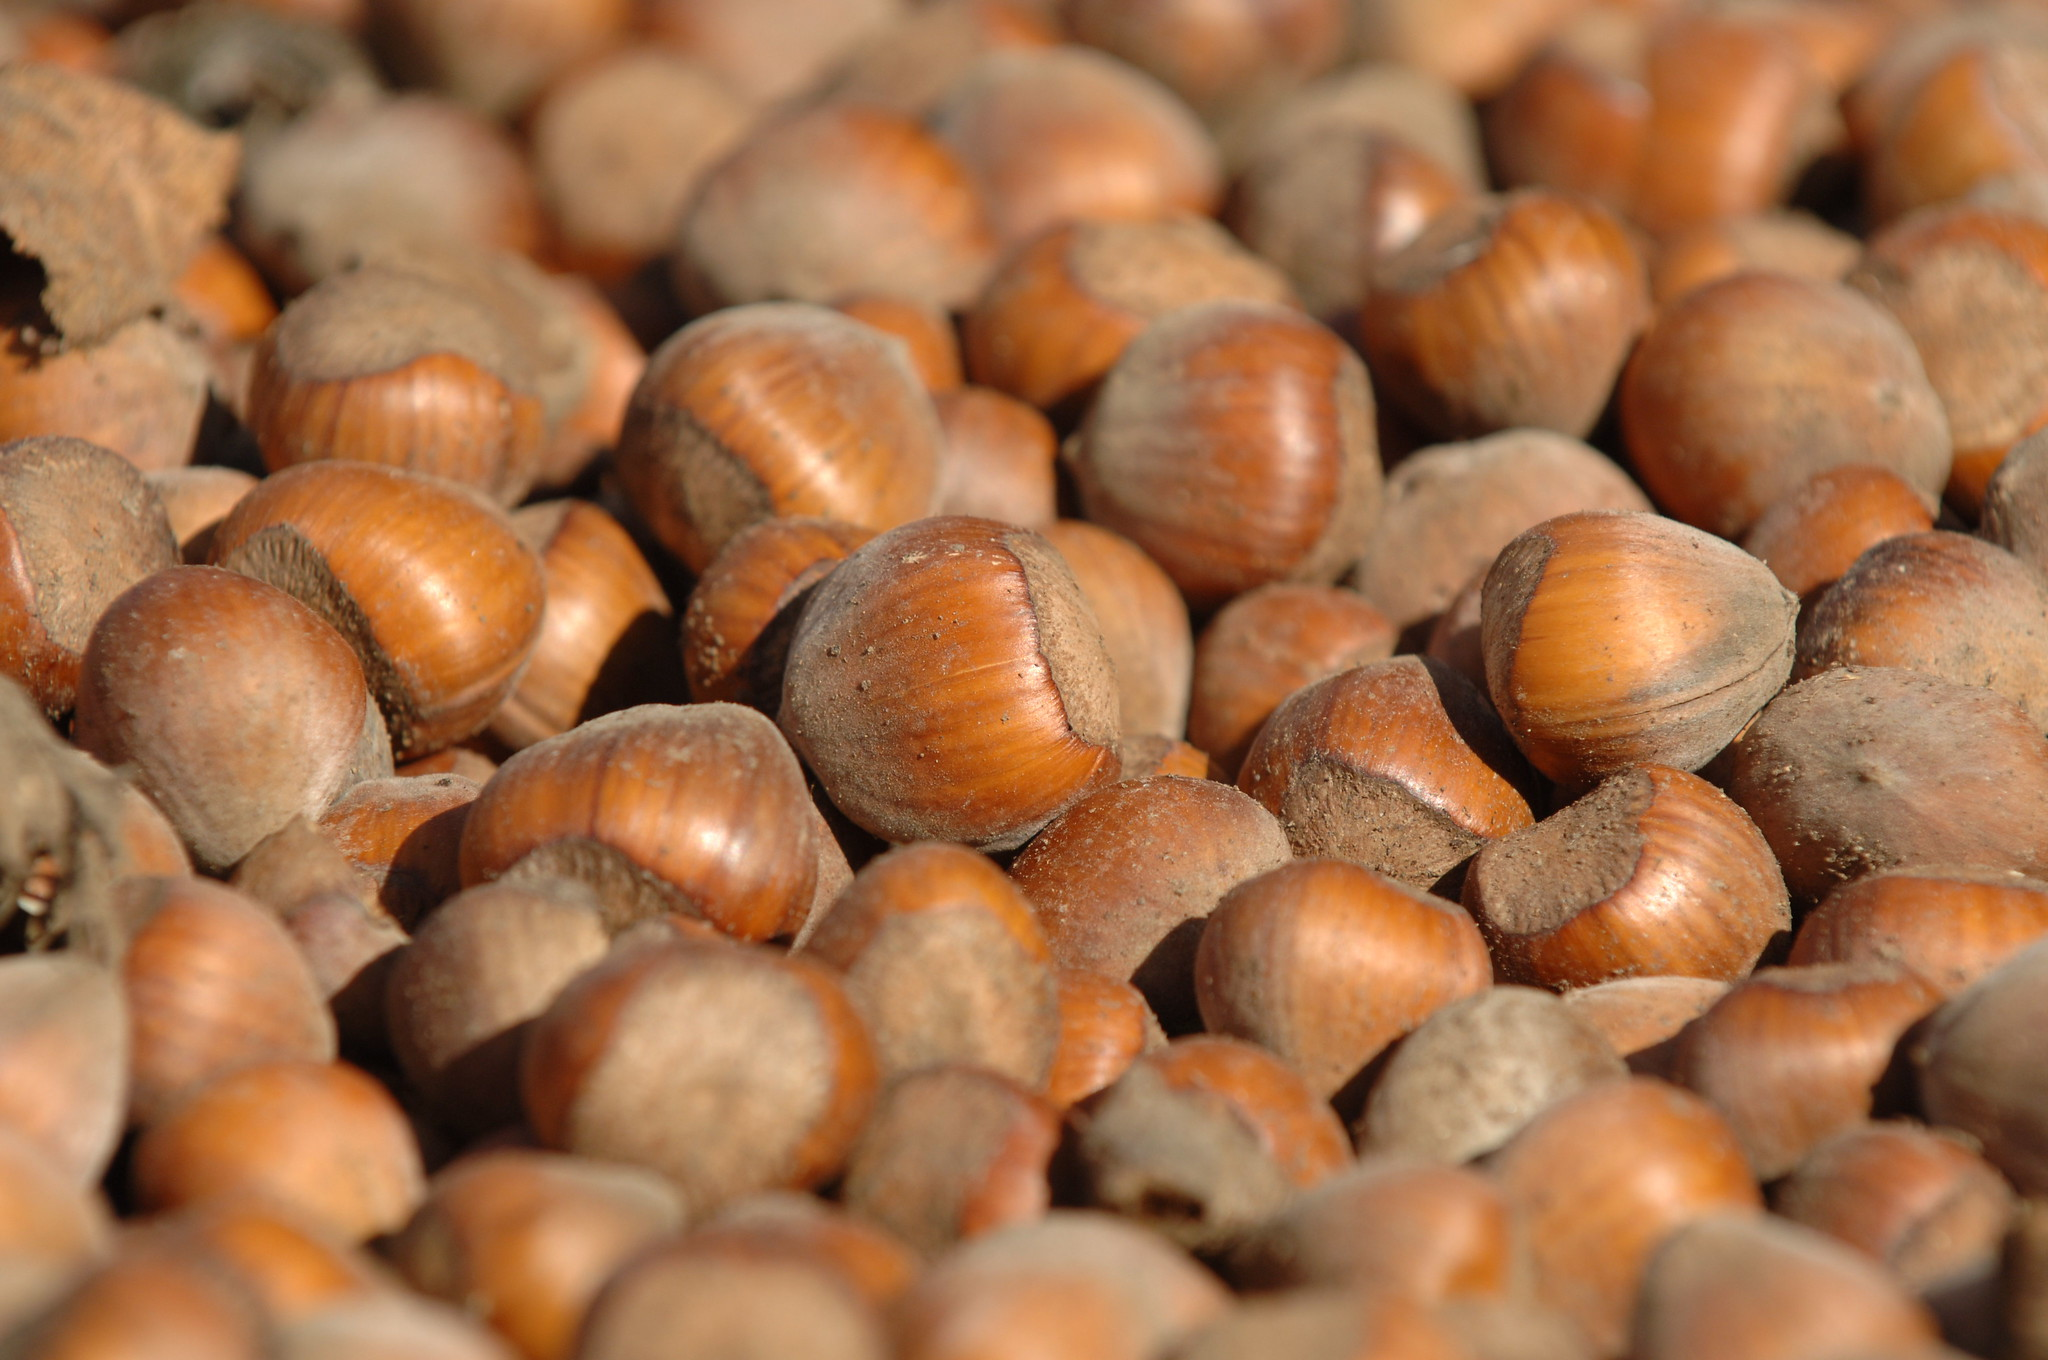 Gather nuts frequently as they fall from the tree